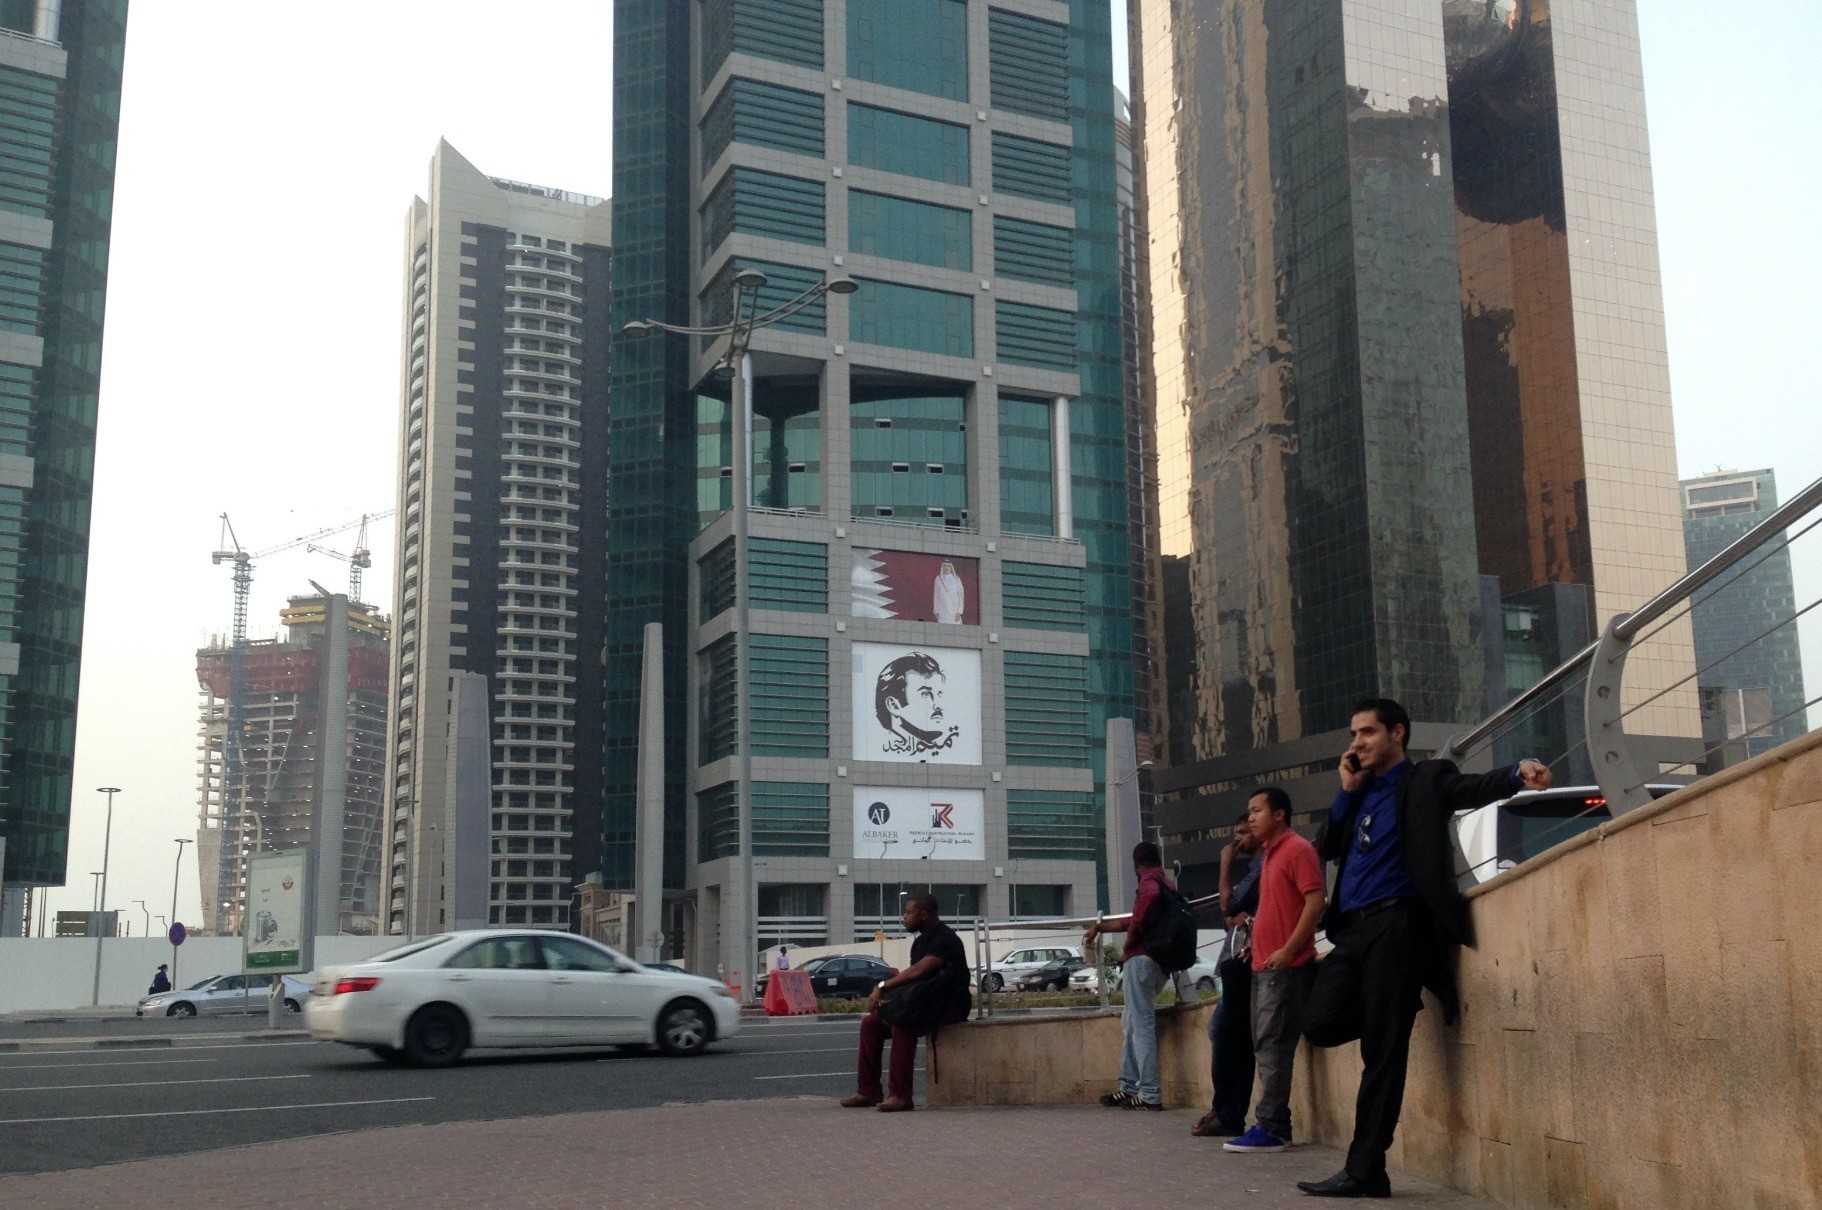 Men wait for a bus in front of a building with the poster of Qatari Emir Sheikh Tamim bin Hamad Al Thani, on July 9, 2017 photo.